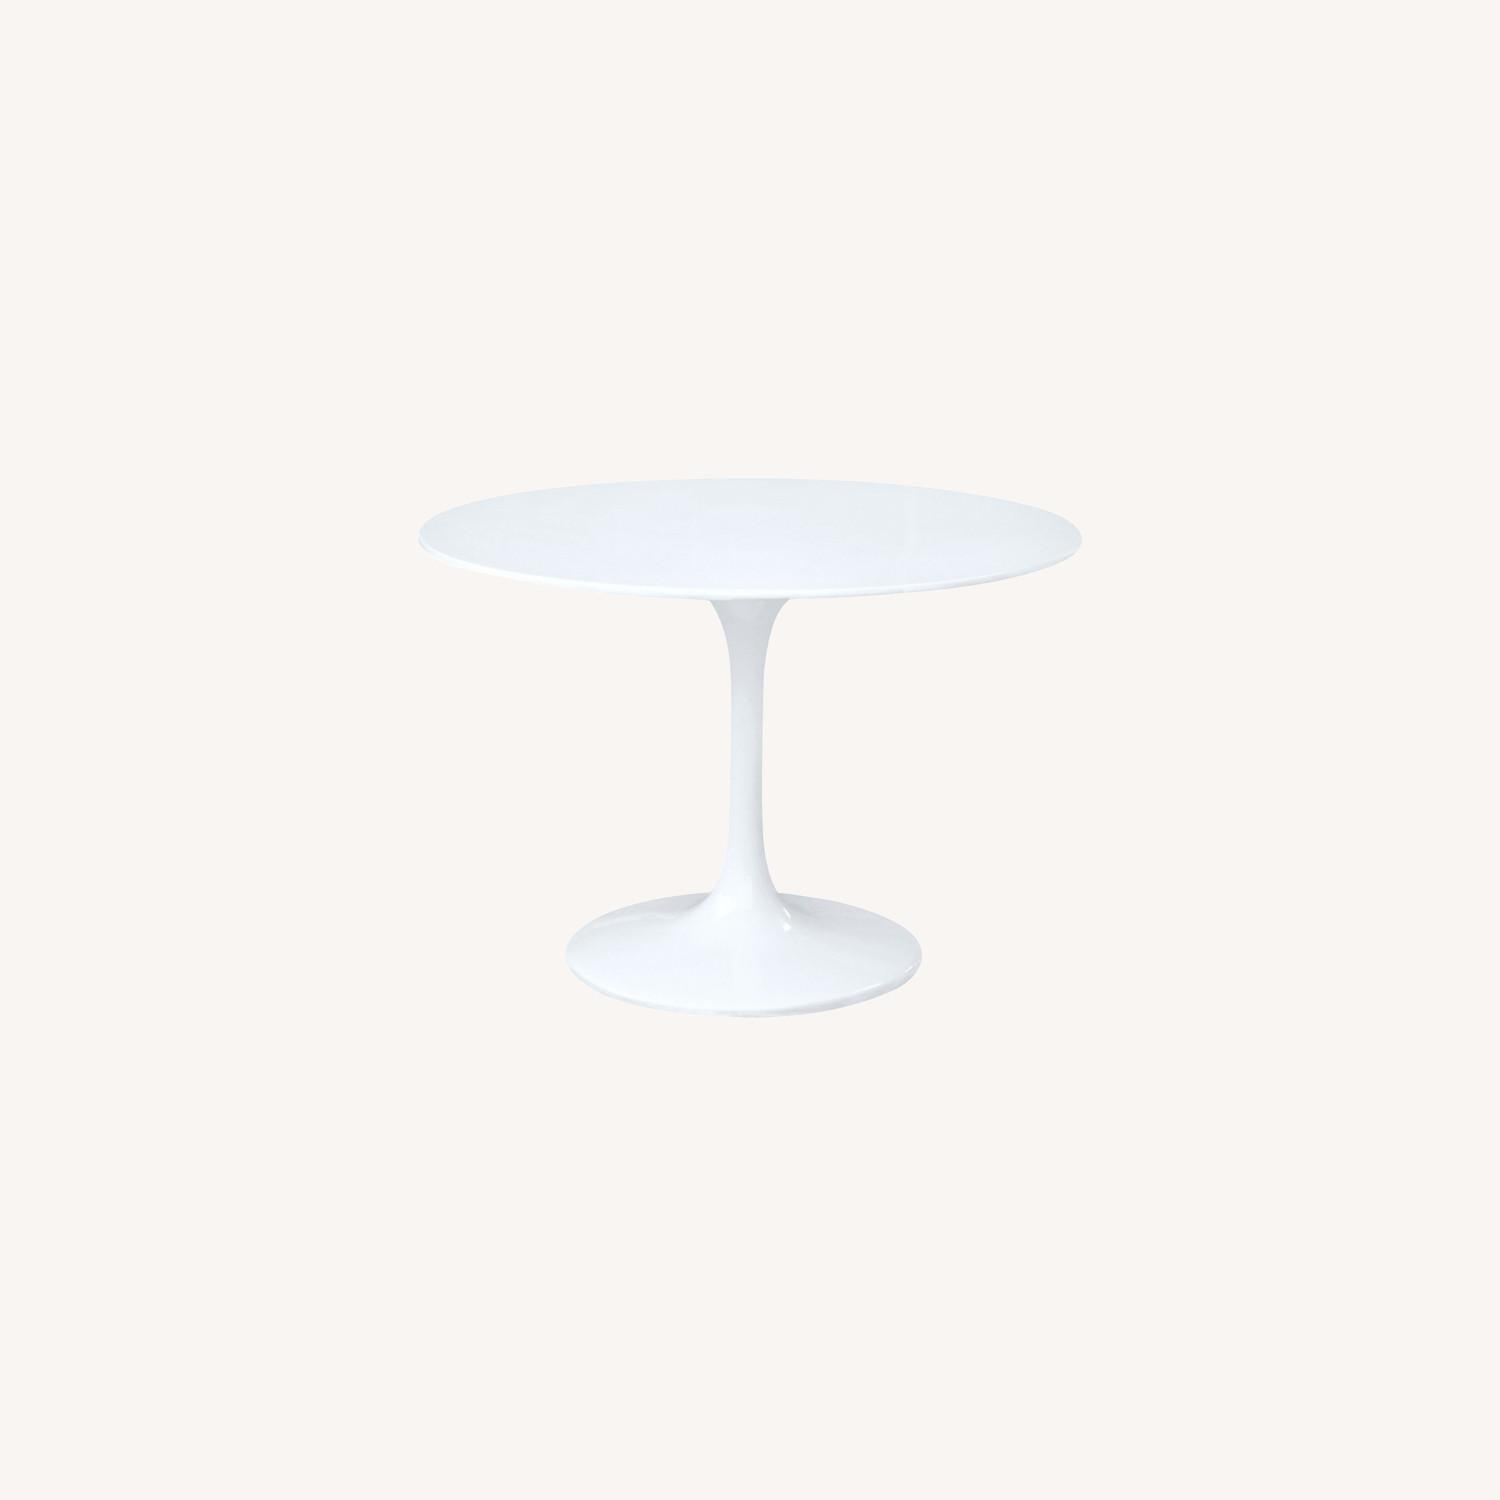 Tulip Style Dining Table In White Fiberglass - image-5